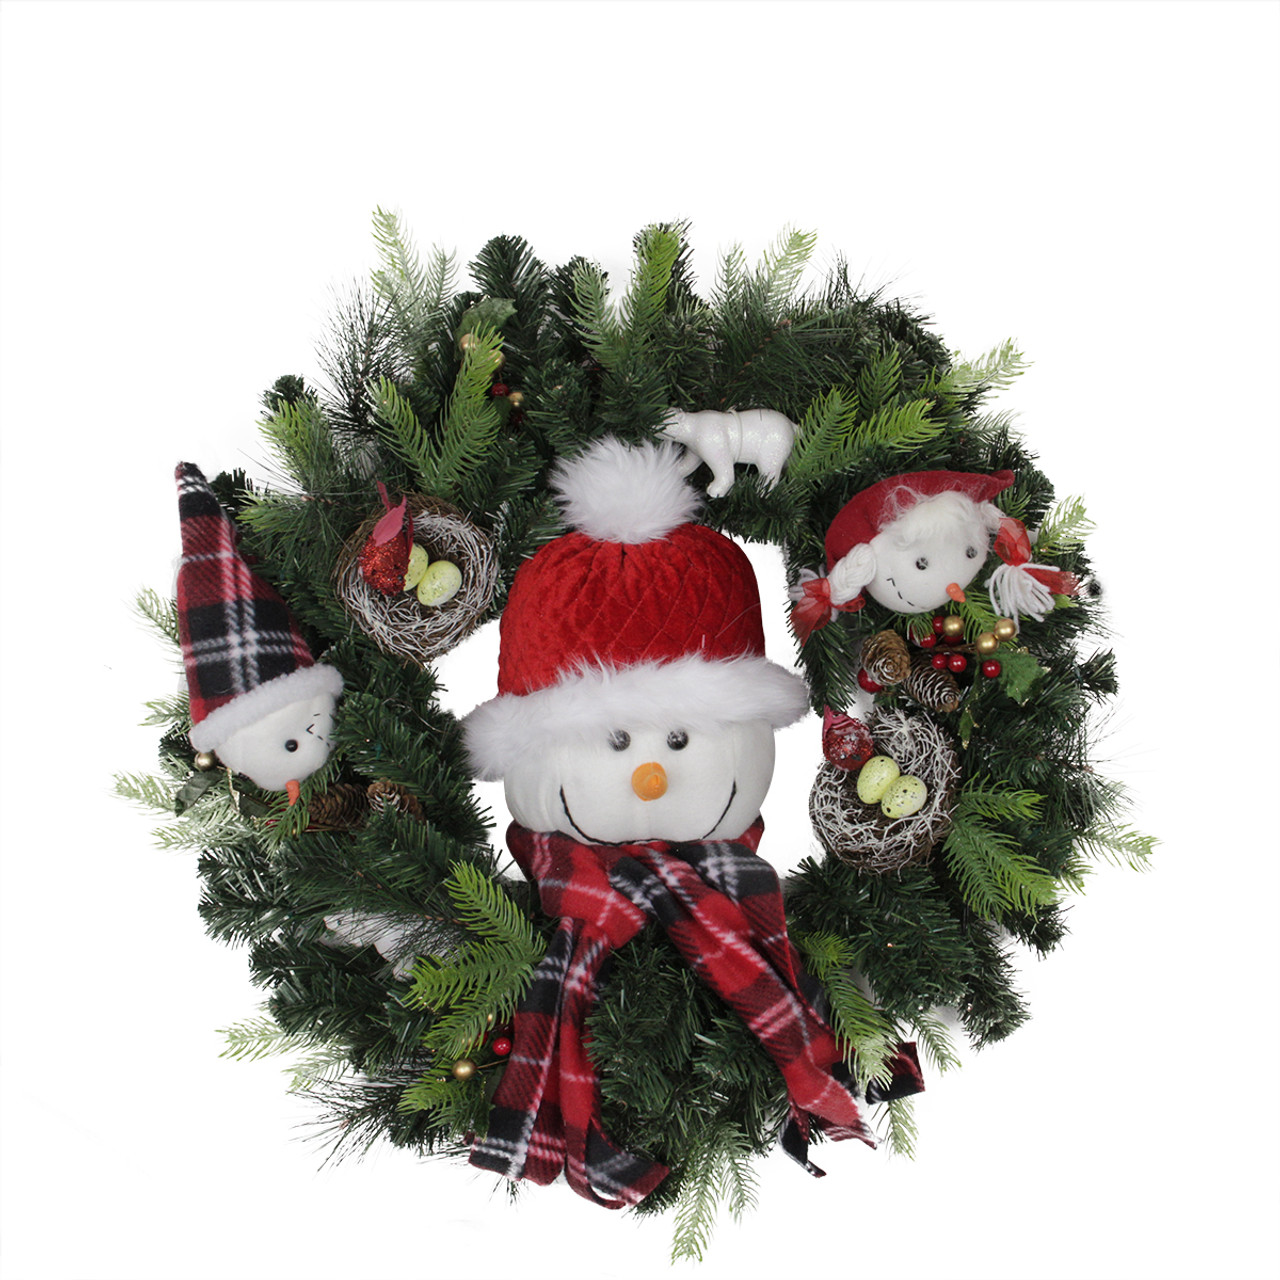 24 pre lit battery operated musical artificial christmas wreath warm clear led lights 31743621 - Battery Operated Christmas Wreaths